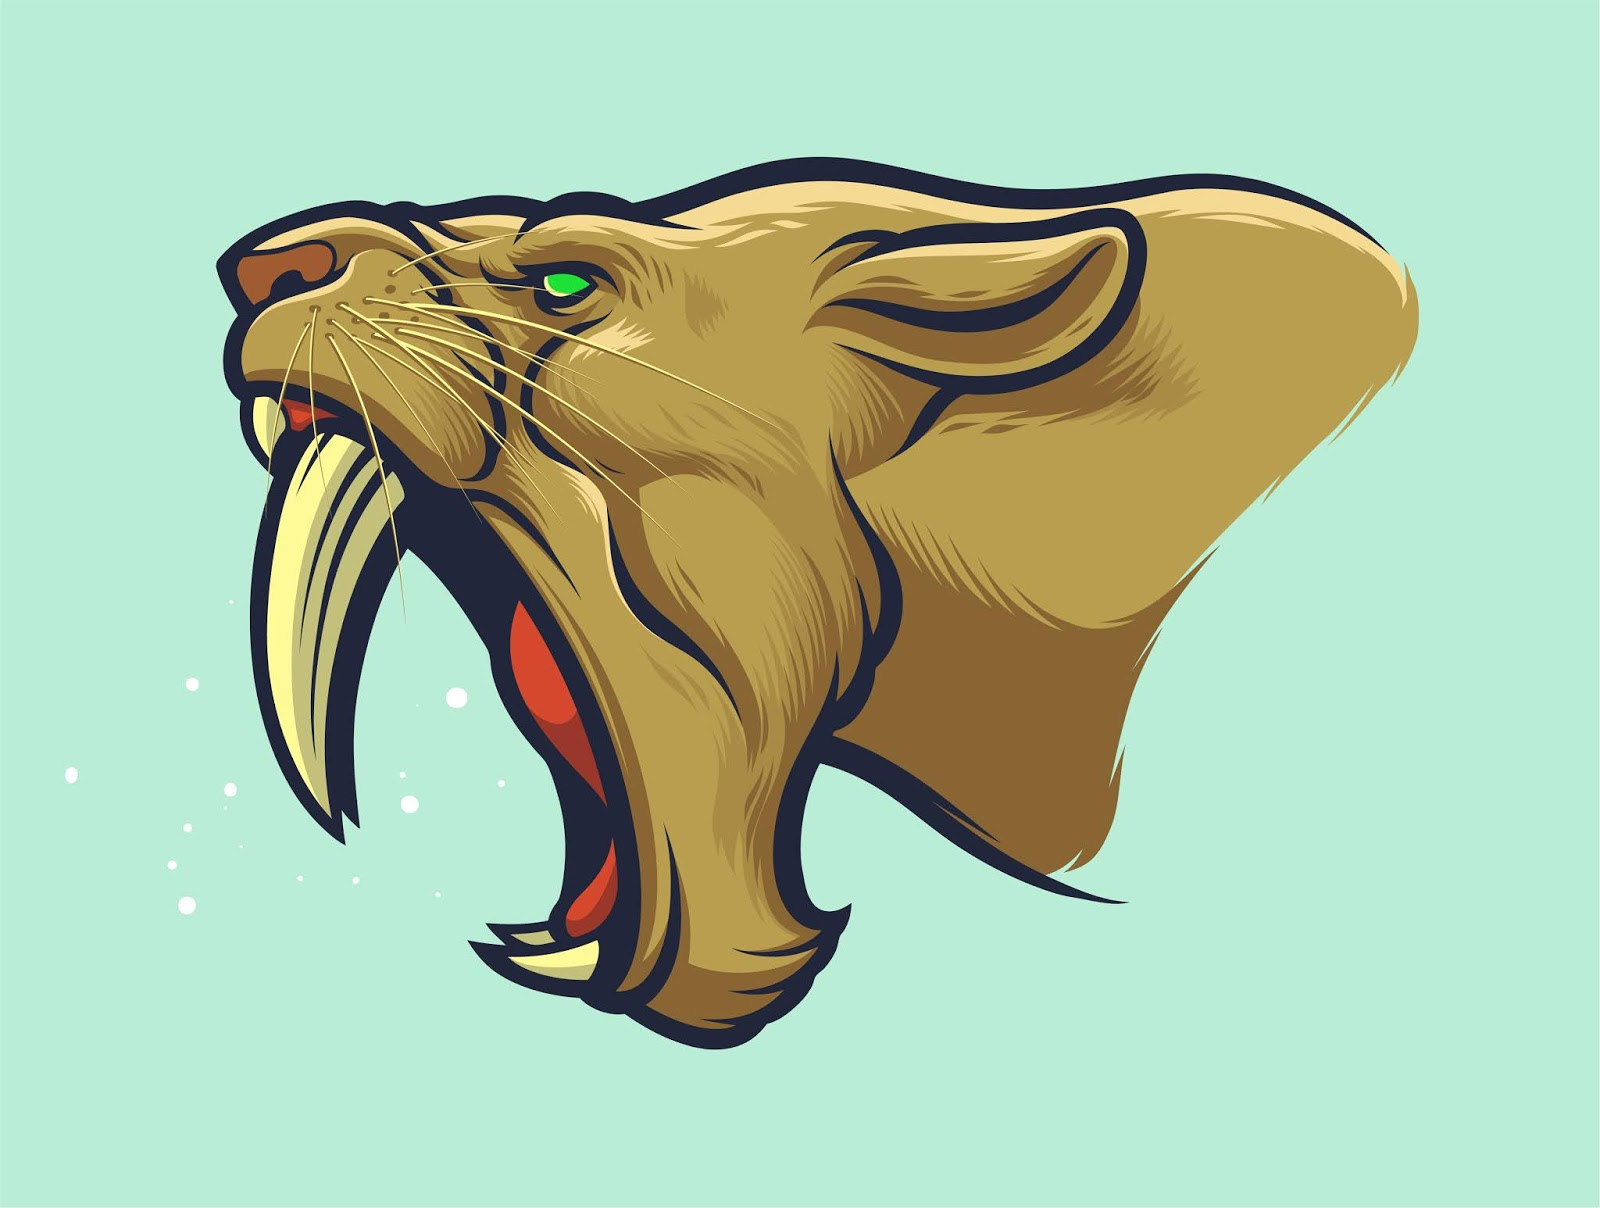 Sabertooth Tiger Head Patch Design Sport Free Download Vector CDR, AI, EPS and PNG Formats